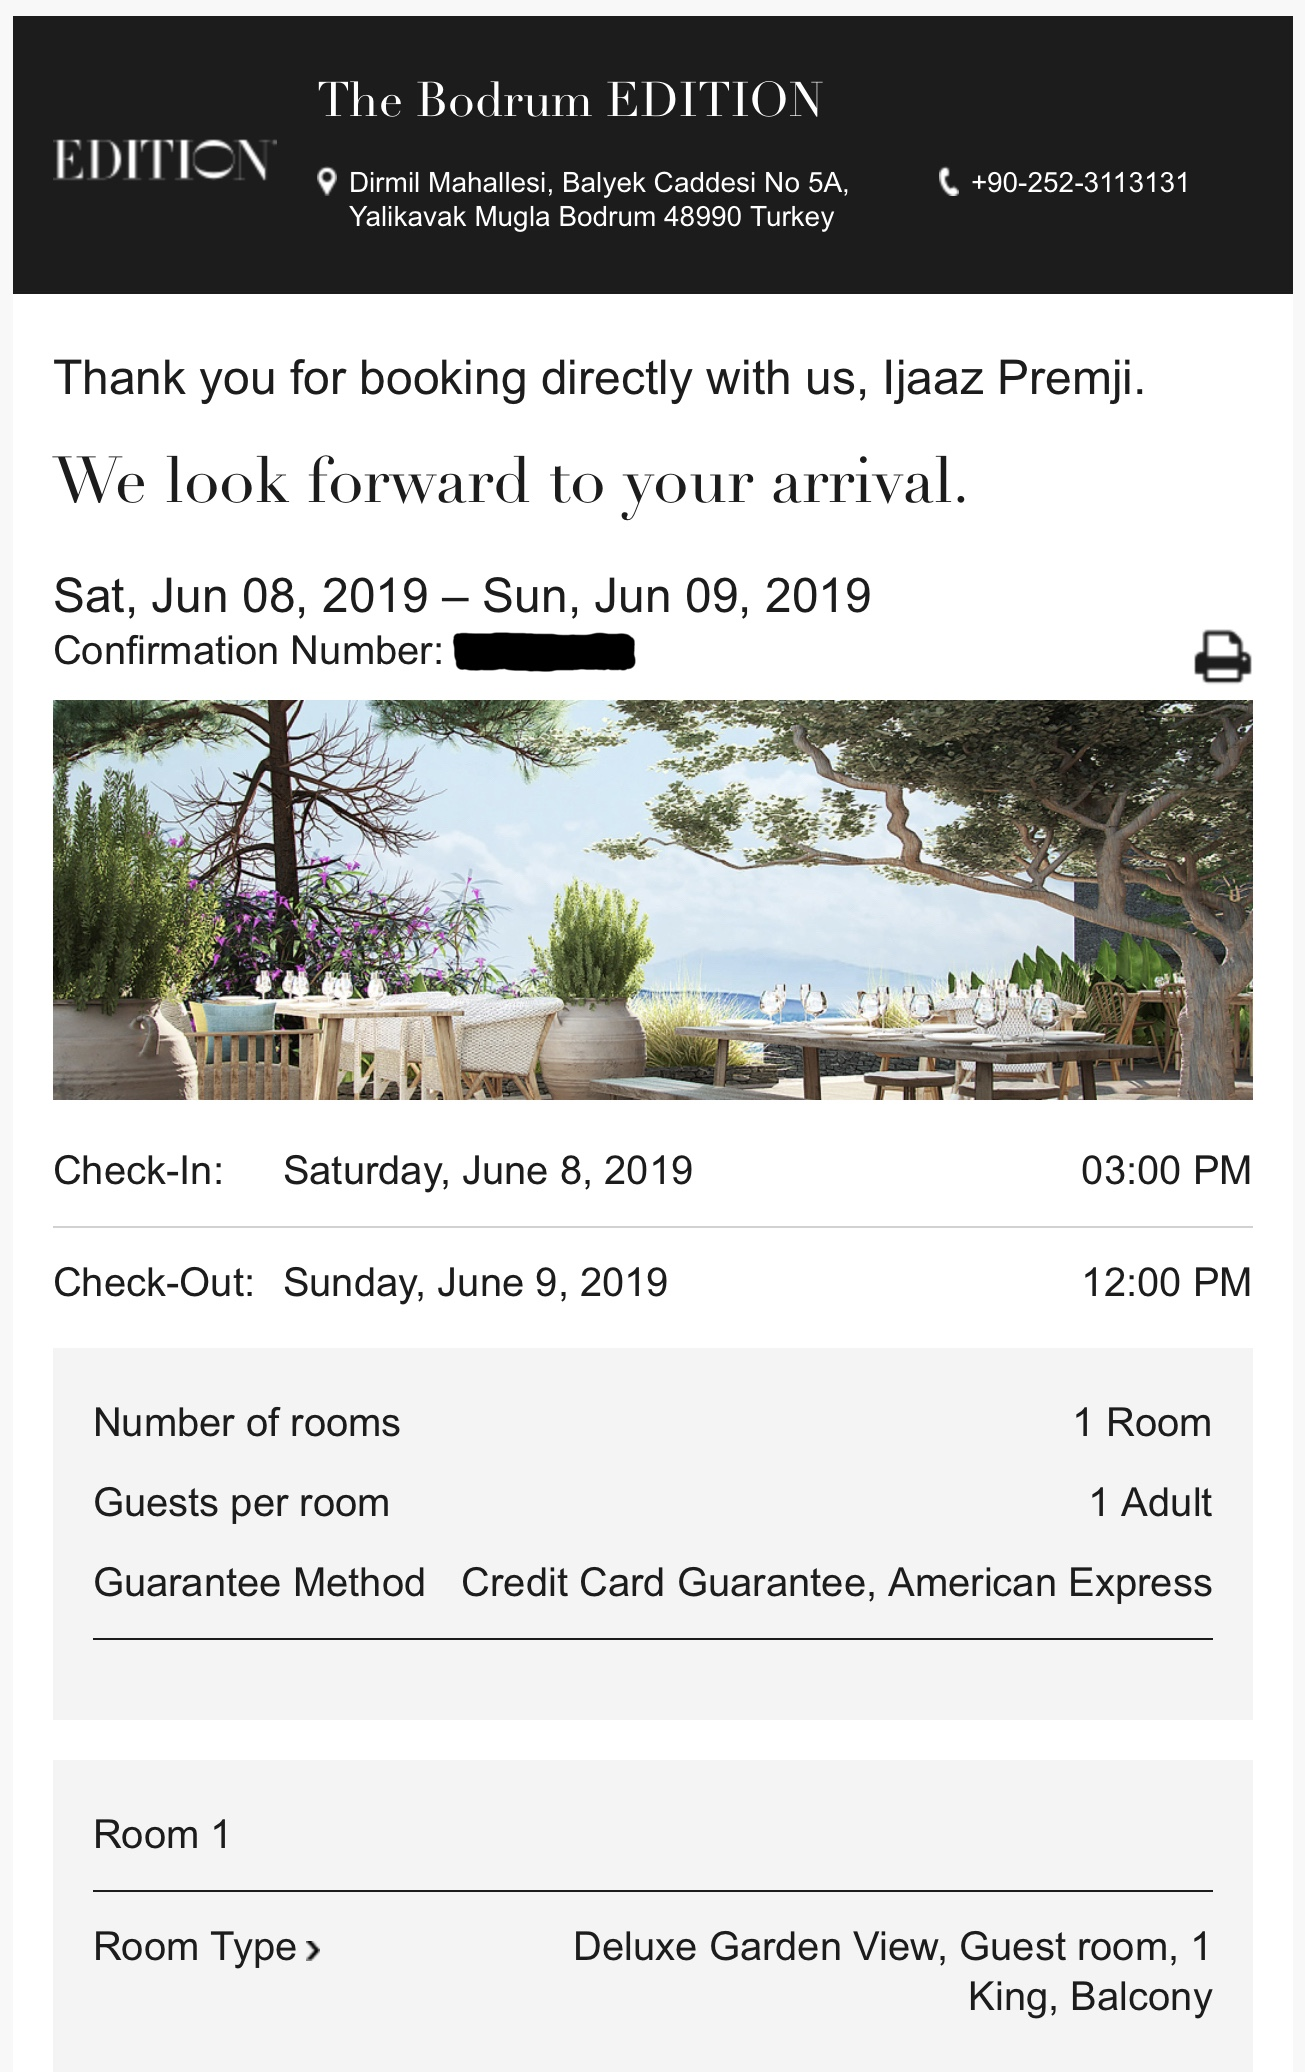 The Bodrum EDITION - Booking Confirmation